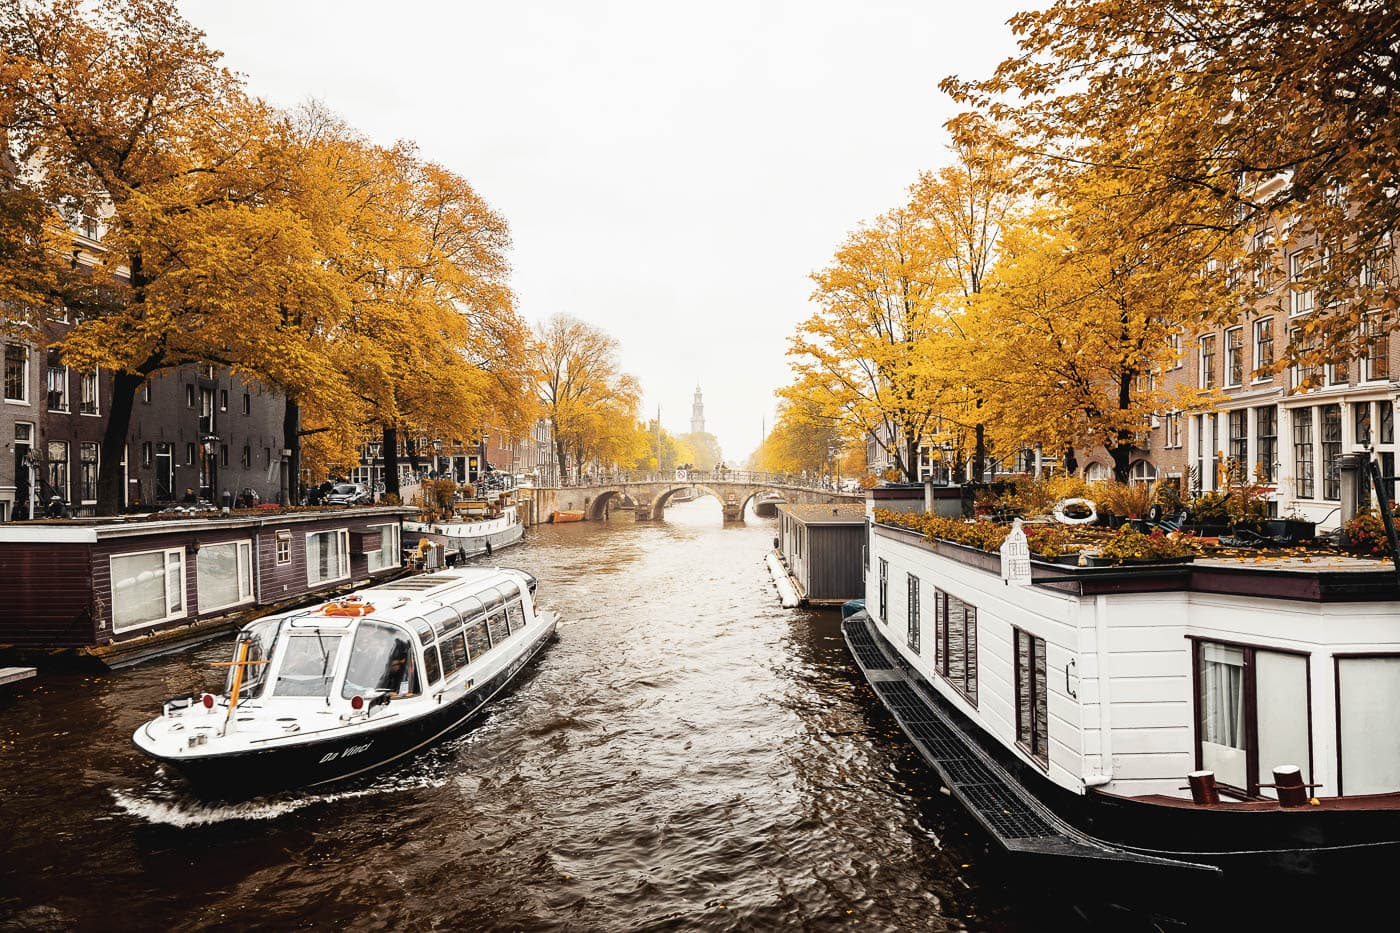 Northern part of Prinsengracht in Amsterdam, Netherlands